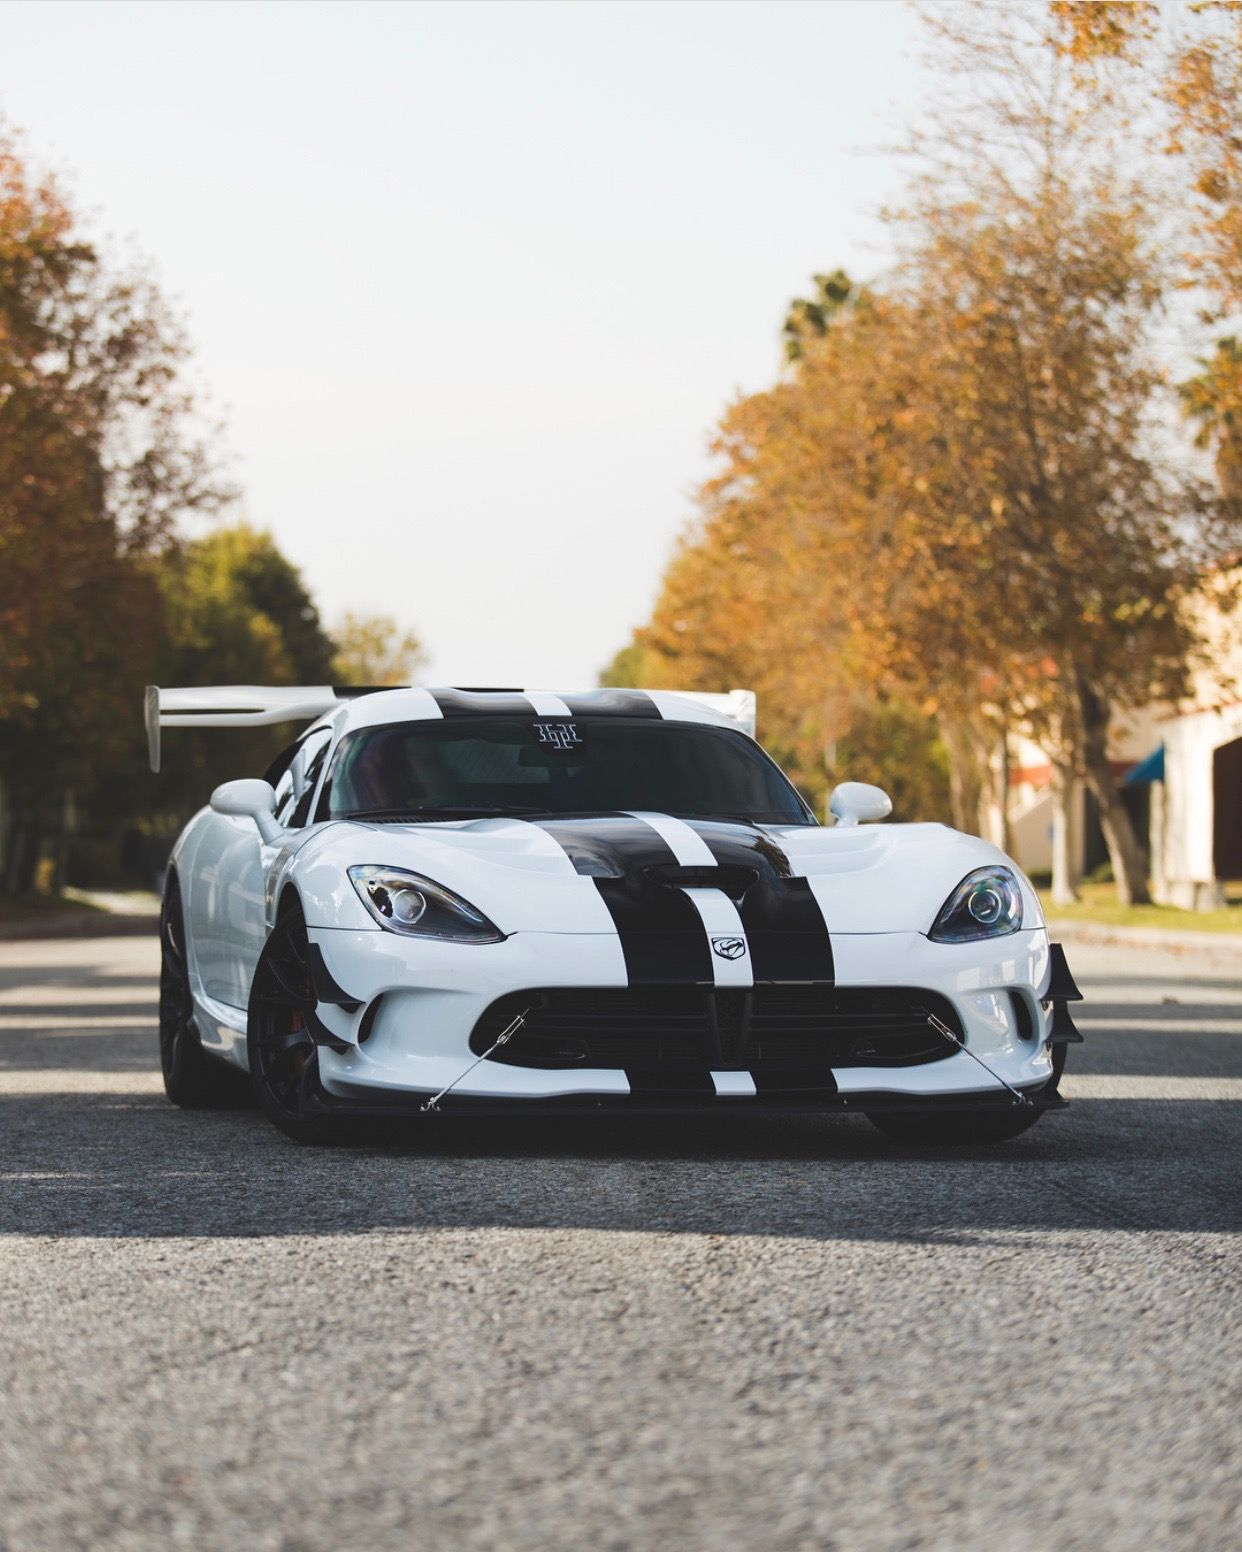 Dodge Viper ACR Painted In White W/ Black Central Stripes